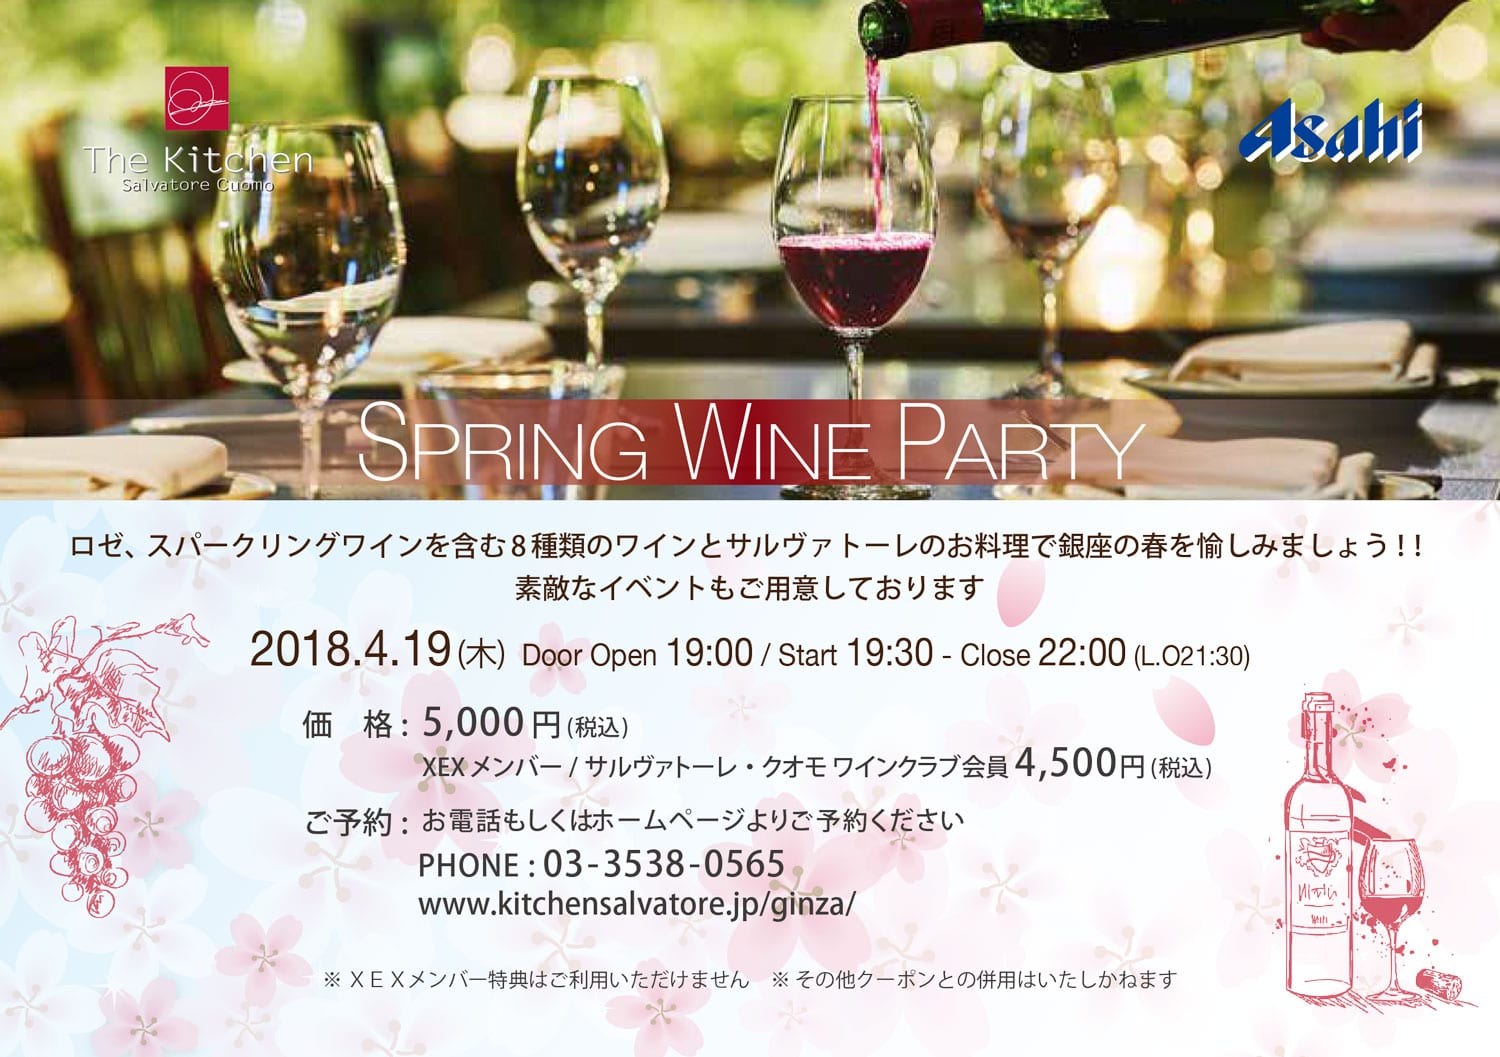 The Kitchen Salvatore Cuomo 銀座「SPRING WINE PARTY」